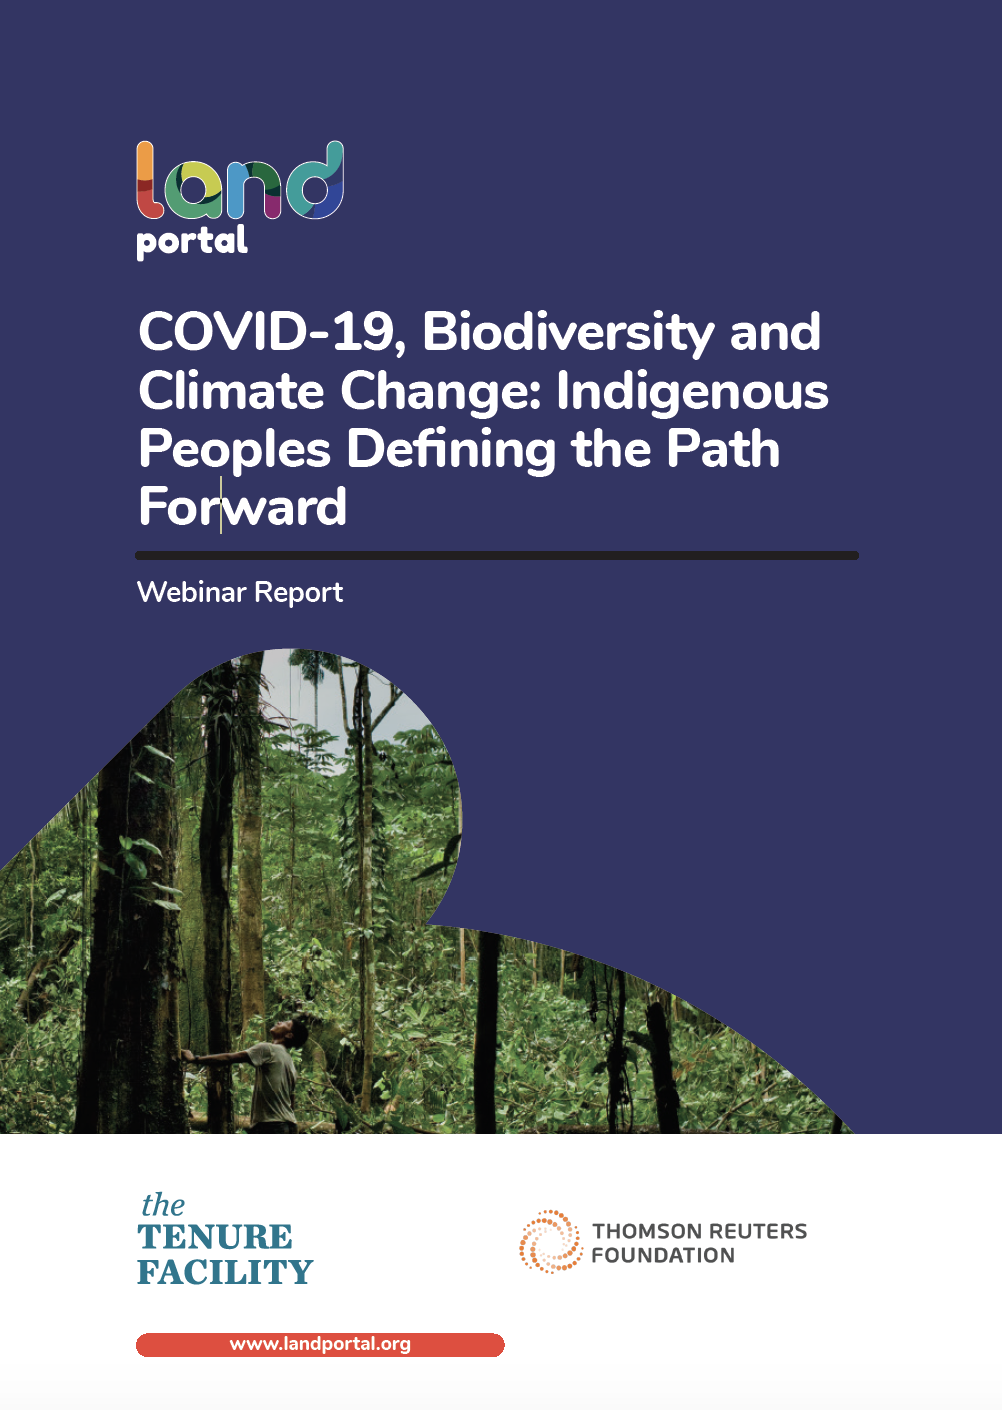 COVID-19, Biodiversity and Climate Change: Indigenous Peoples Defining the Path Forward